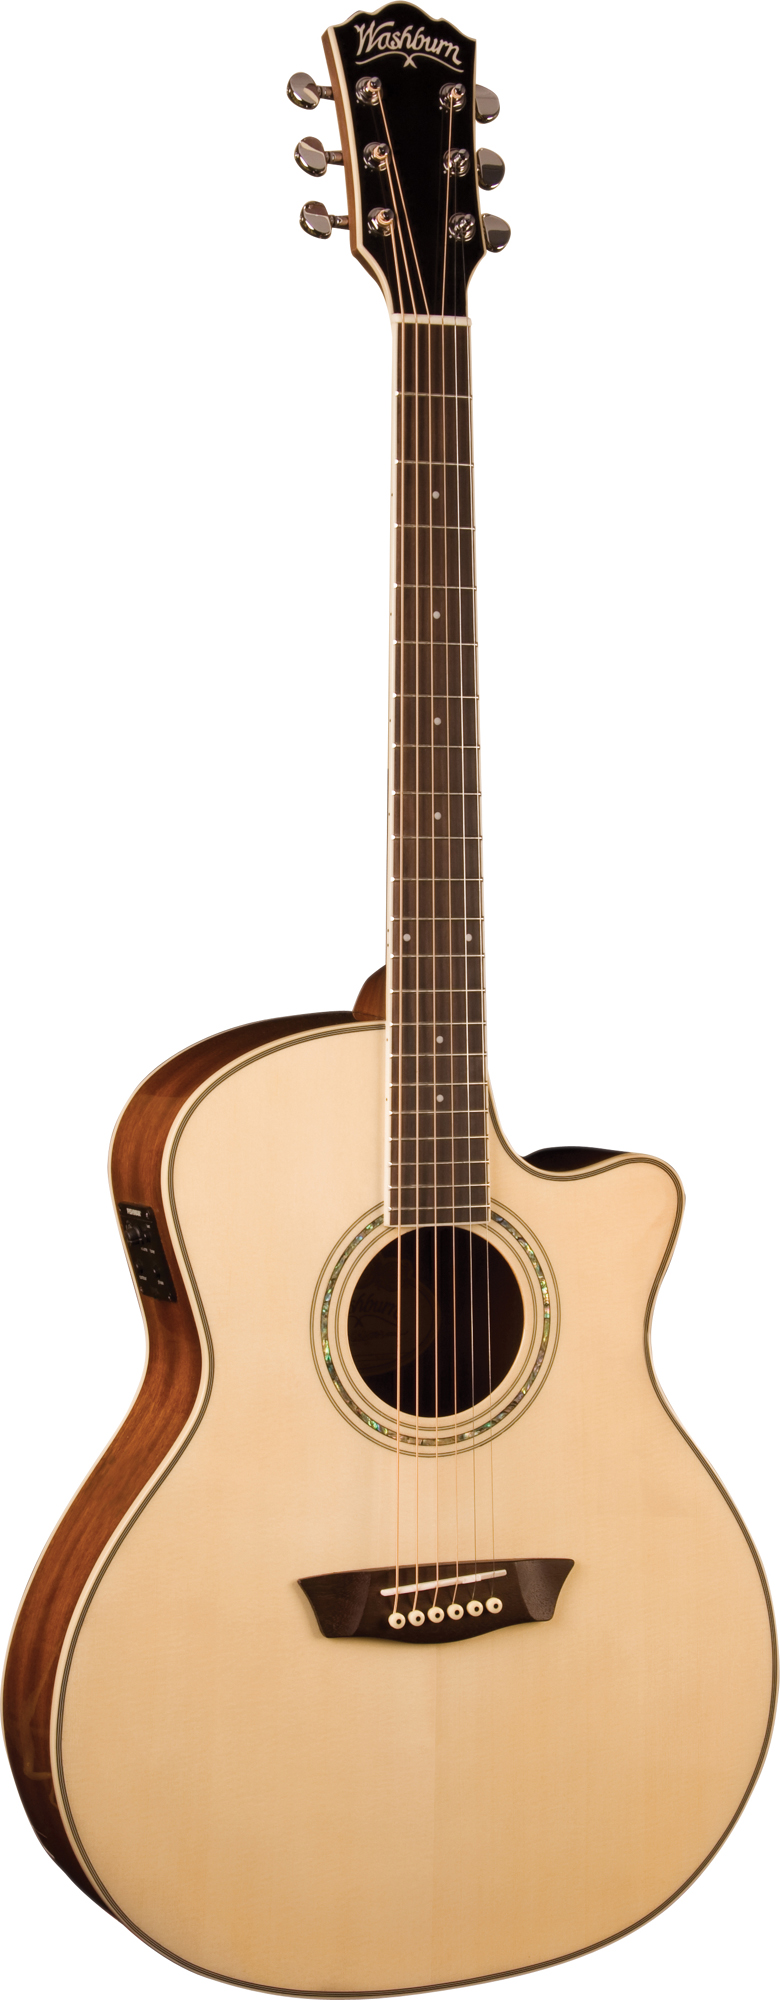 washburn wcg18ce comfort series acoustic guitar with chrome tuners and natural finish was12. Black Bedroom Furniture Sets. Home Design Ideas